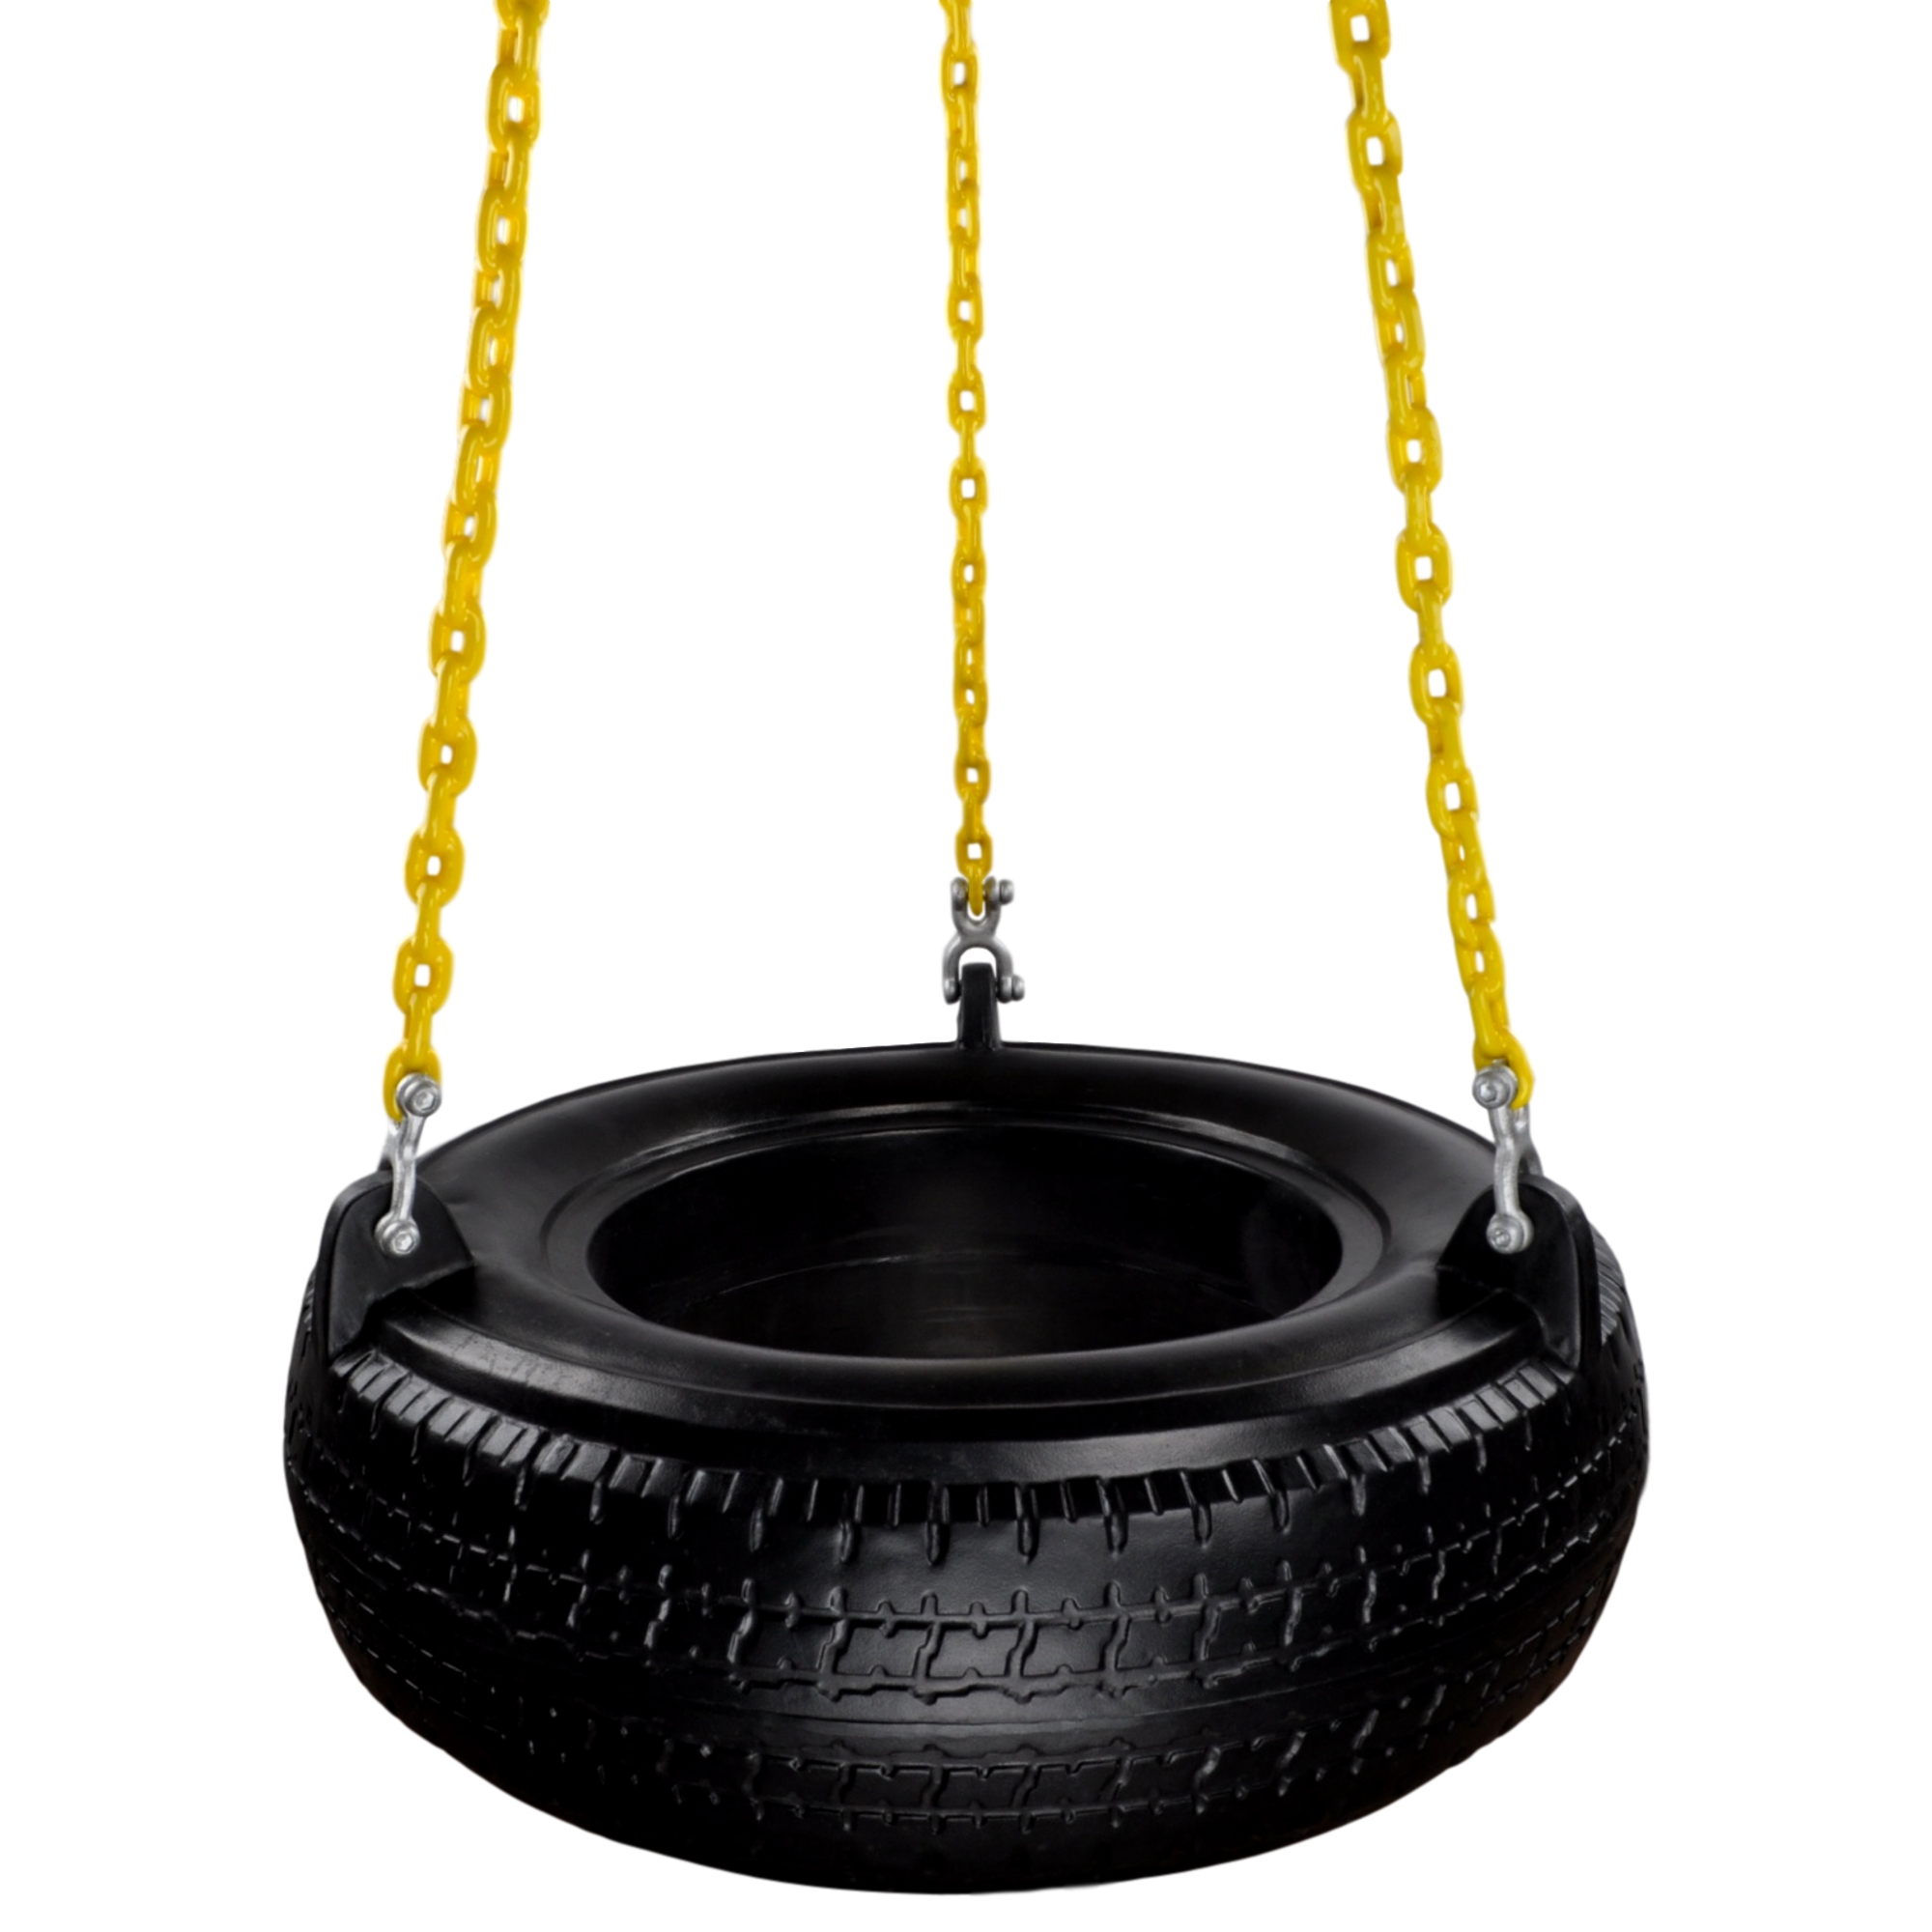 Swing Set Stuff Inc Plastic Tire Swing With Coated Chain Black